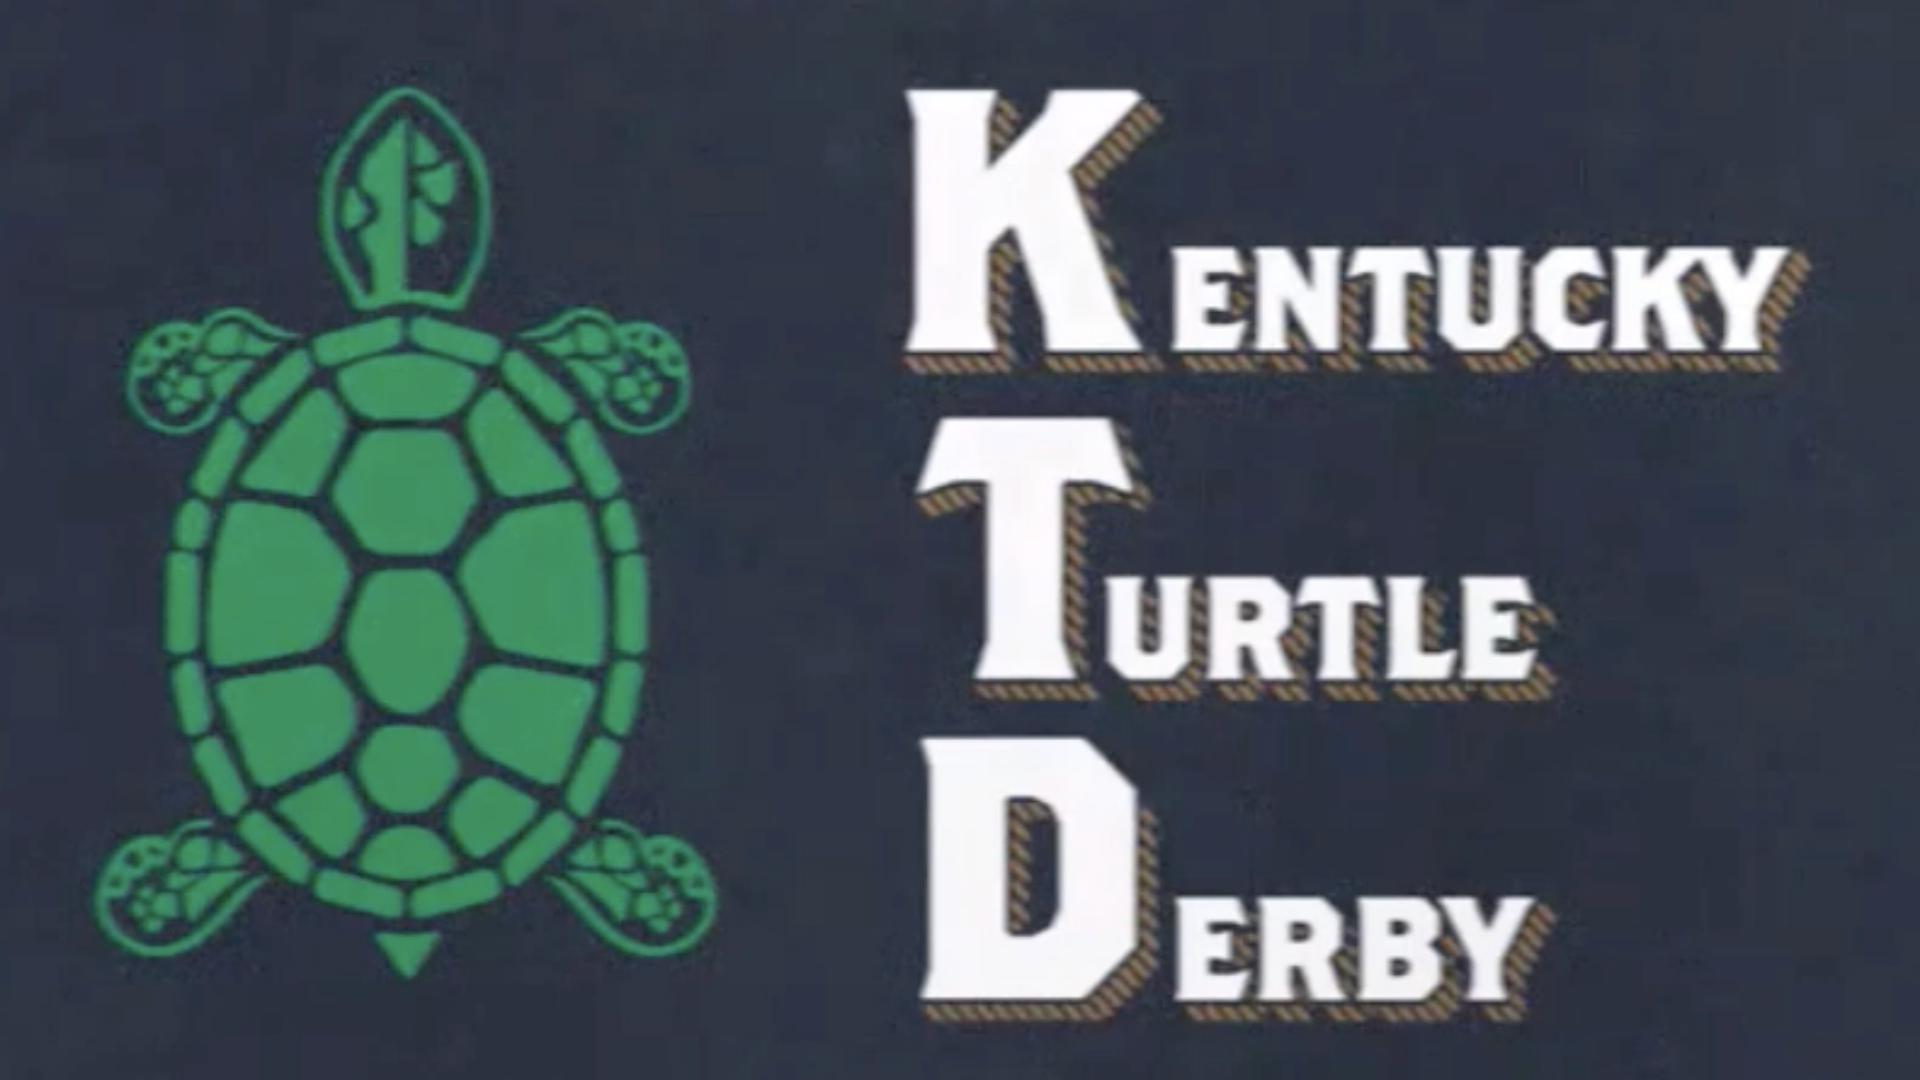 The Slowest Eight Minutes in Sports: How a turtle derby will replace the Kentucky Derby